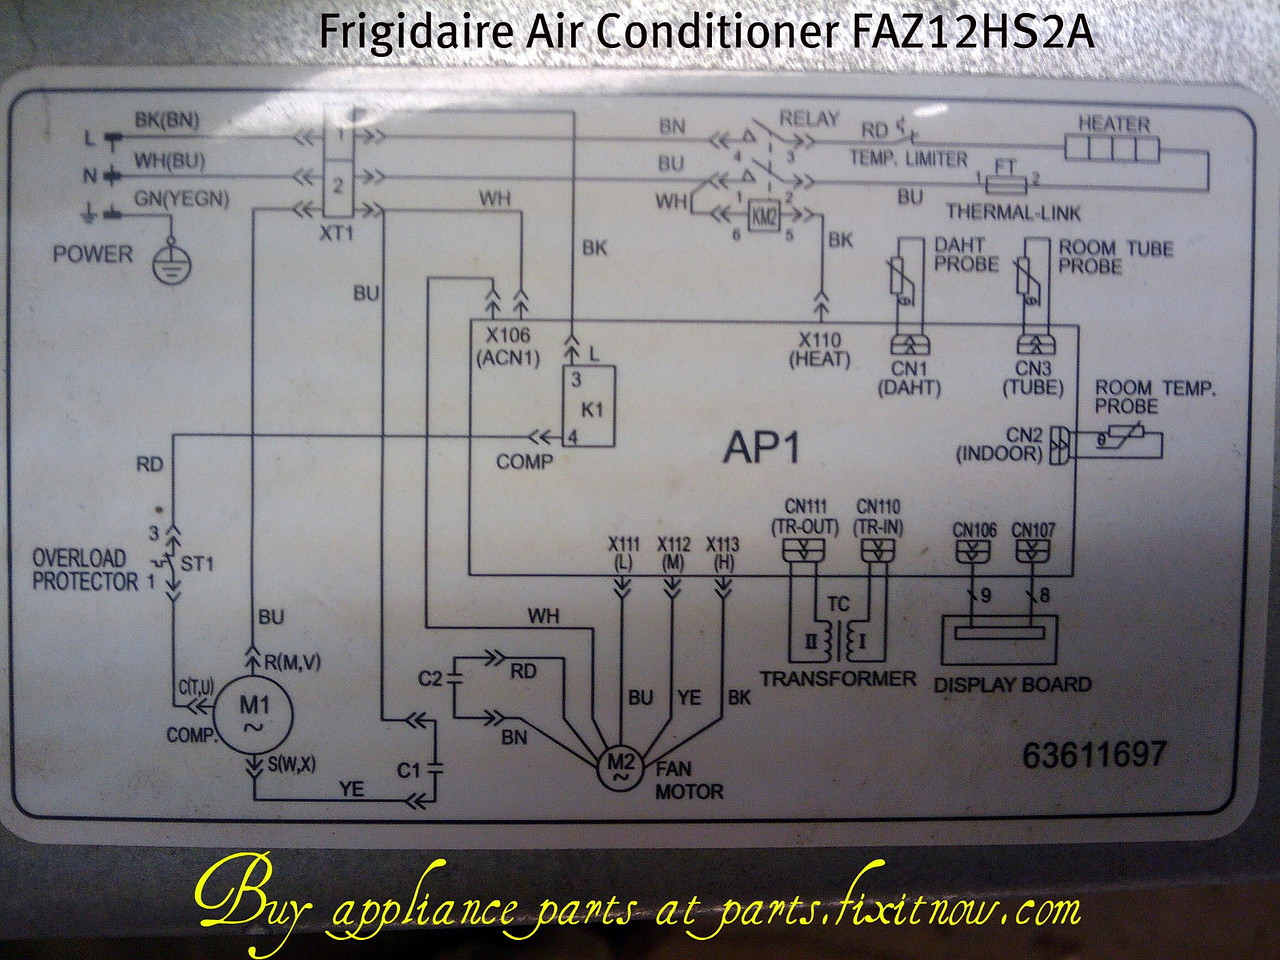 Wiring diagrams and schematics appliantology frigidaire air conditioner faz12hs2a eng 13 schematic asfbconference2016